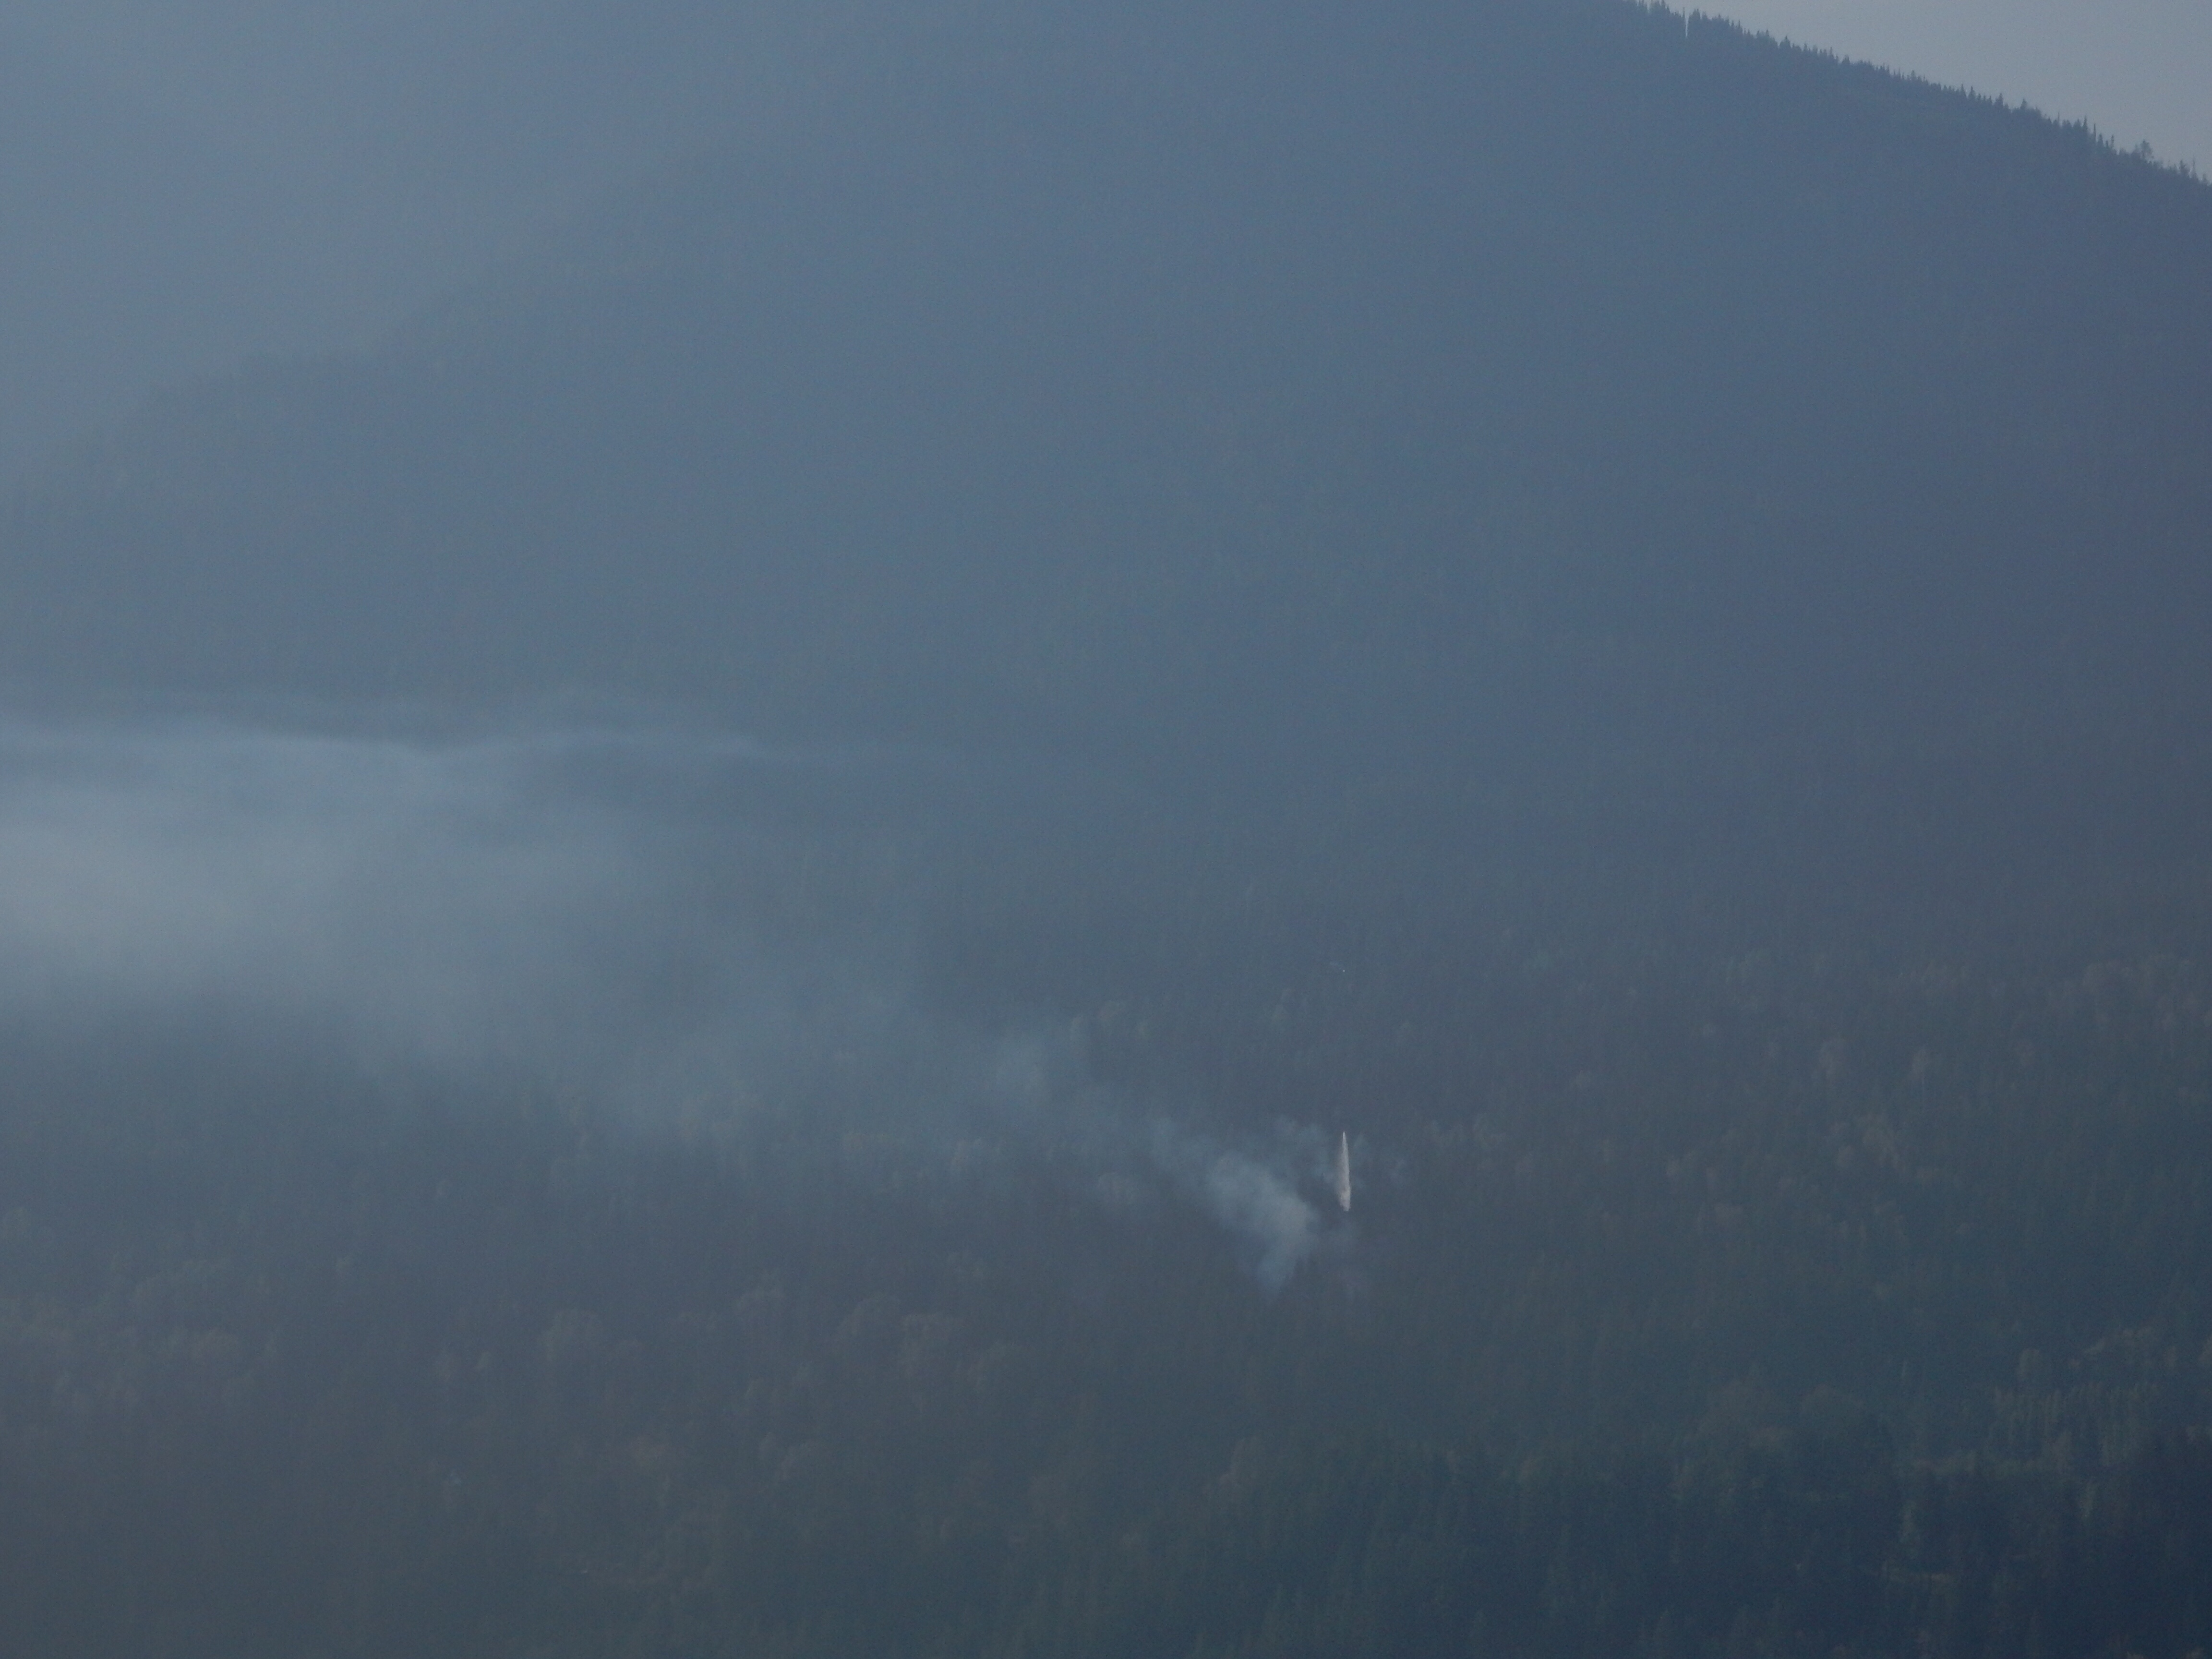 A helicopter drops a load of water on the power line fire north of Balfour, as seen from the Kootenay Lake ferry.